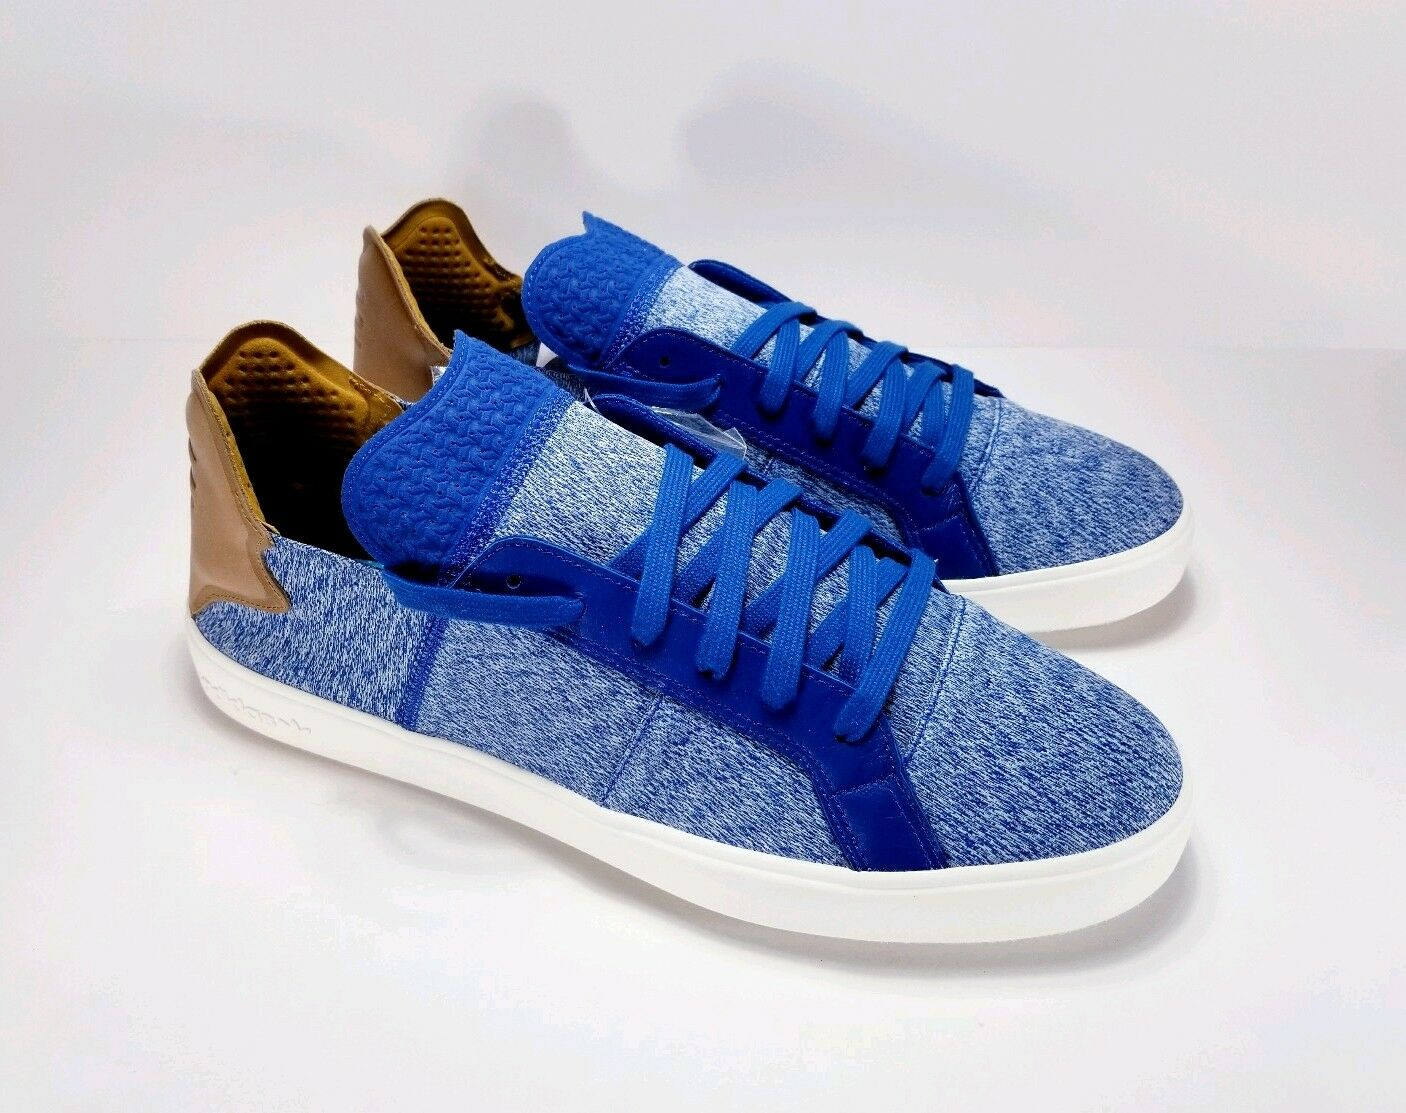 RARE Adidas x Pharrell Williams Men Vulc Lace-Up AQ5779 Size 12 bluee LIMITED